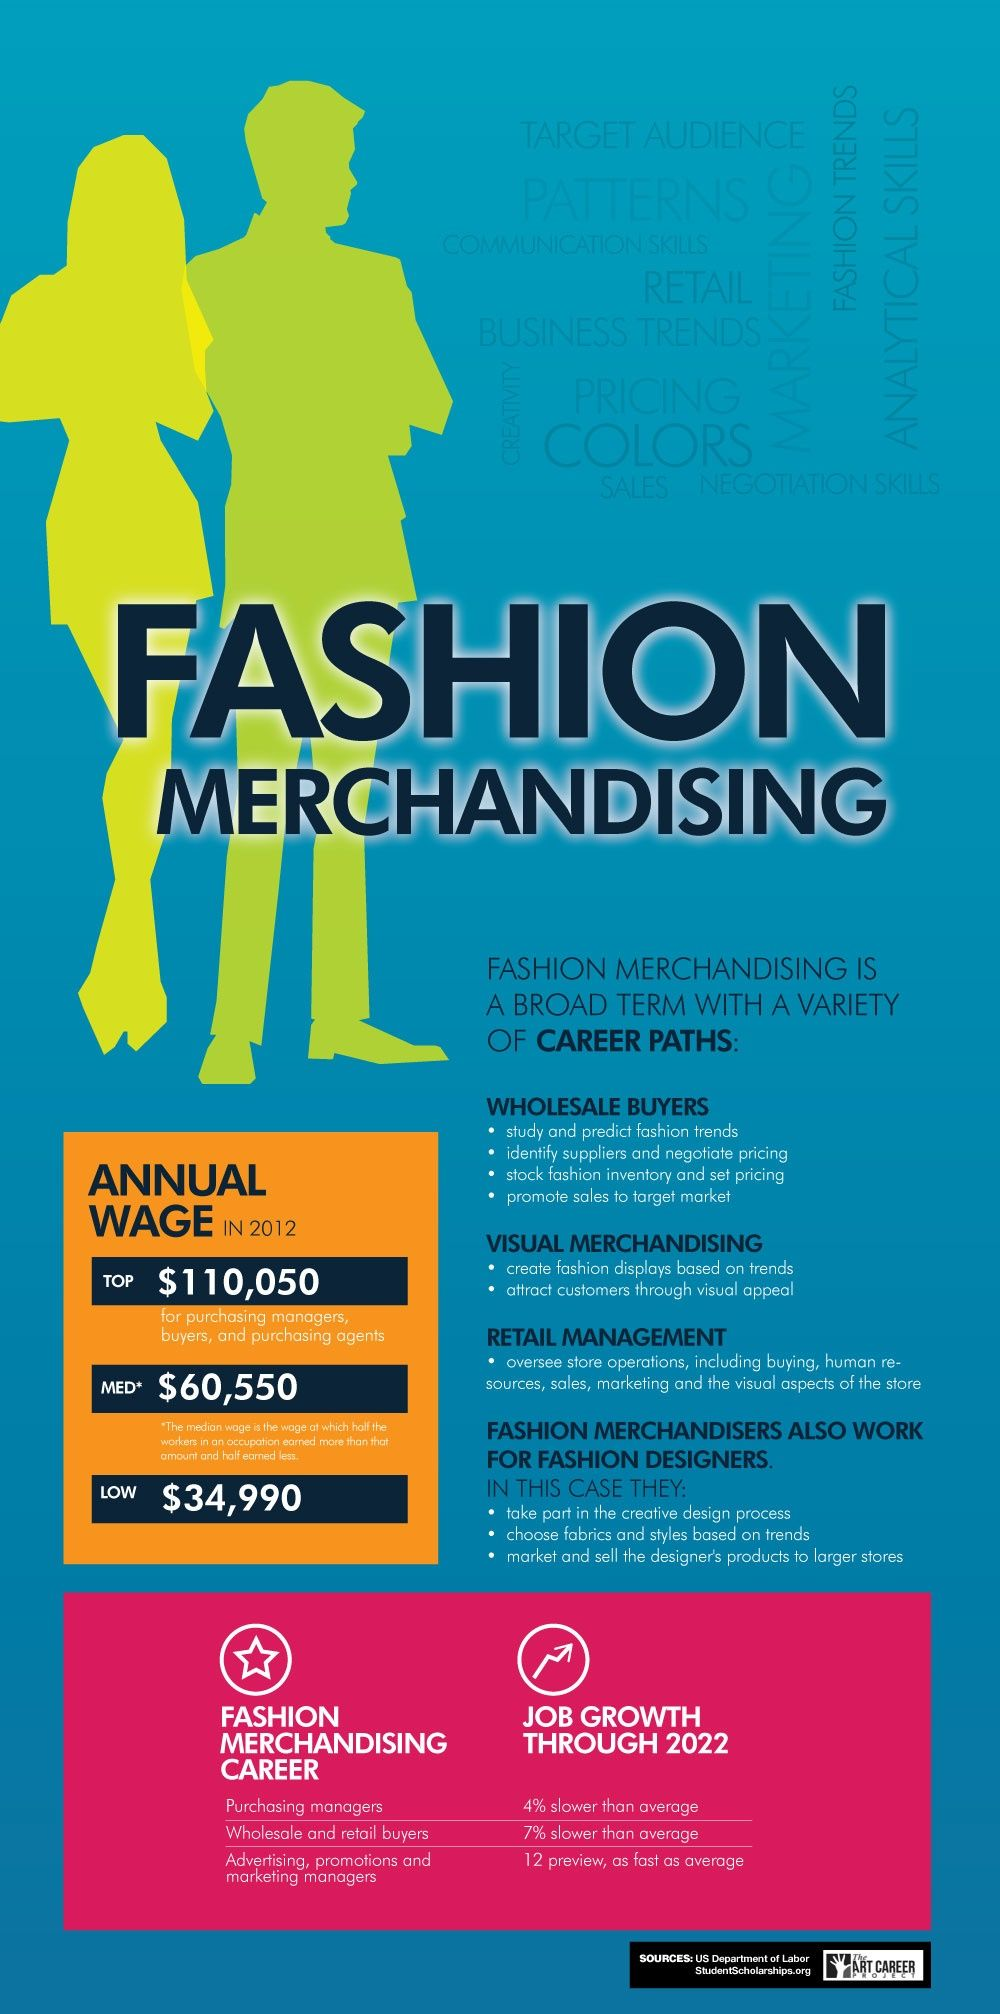 Fashion Merchandising Top Careers Wages Job Growth Pin It Theartcareerproject Com Fashionillustr Fashion Merchandising Merchandising Jobs Fashion Jobs